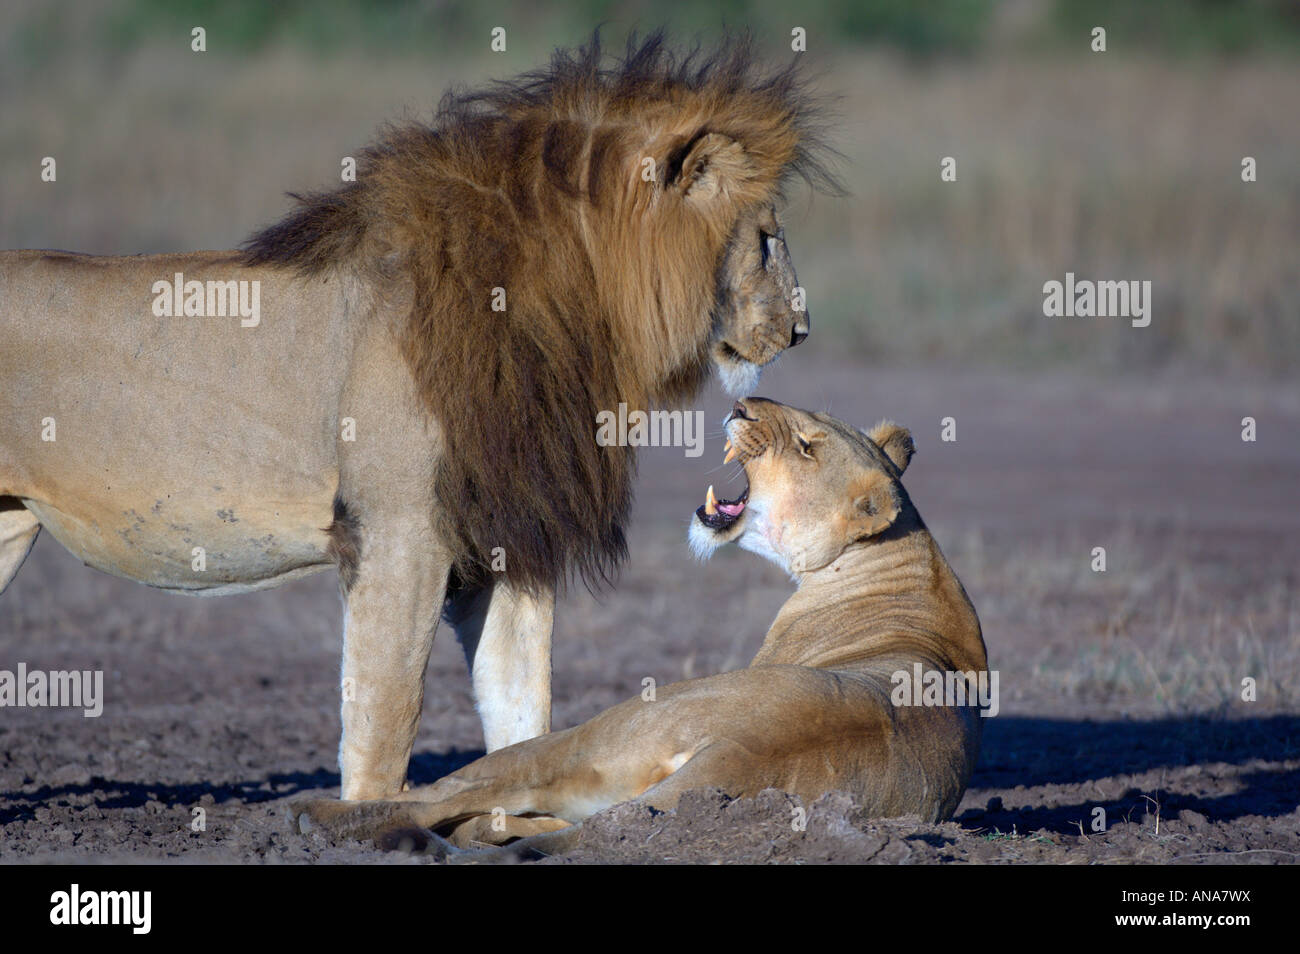 Female lion snarling at a male with a large mane (Panthera leo) - Stock Image